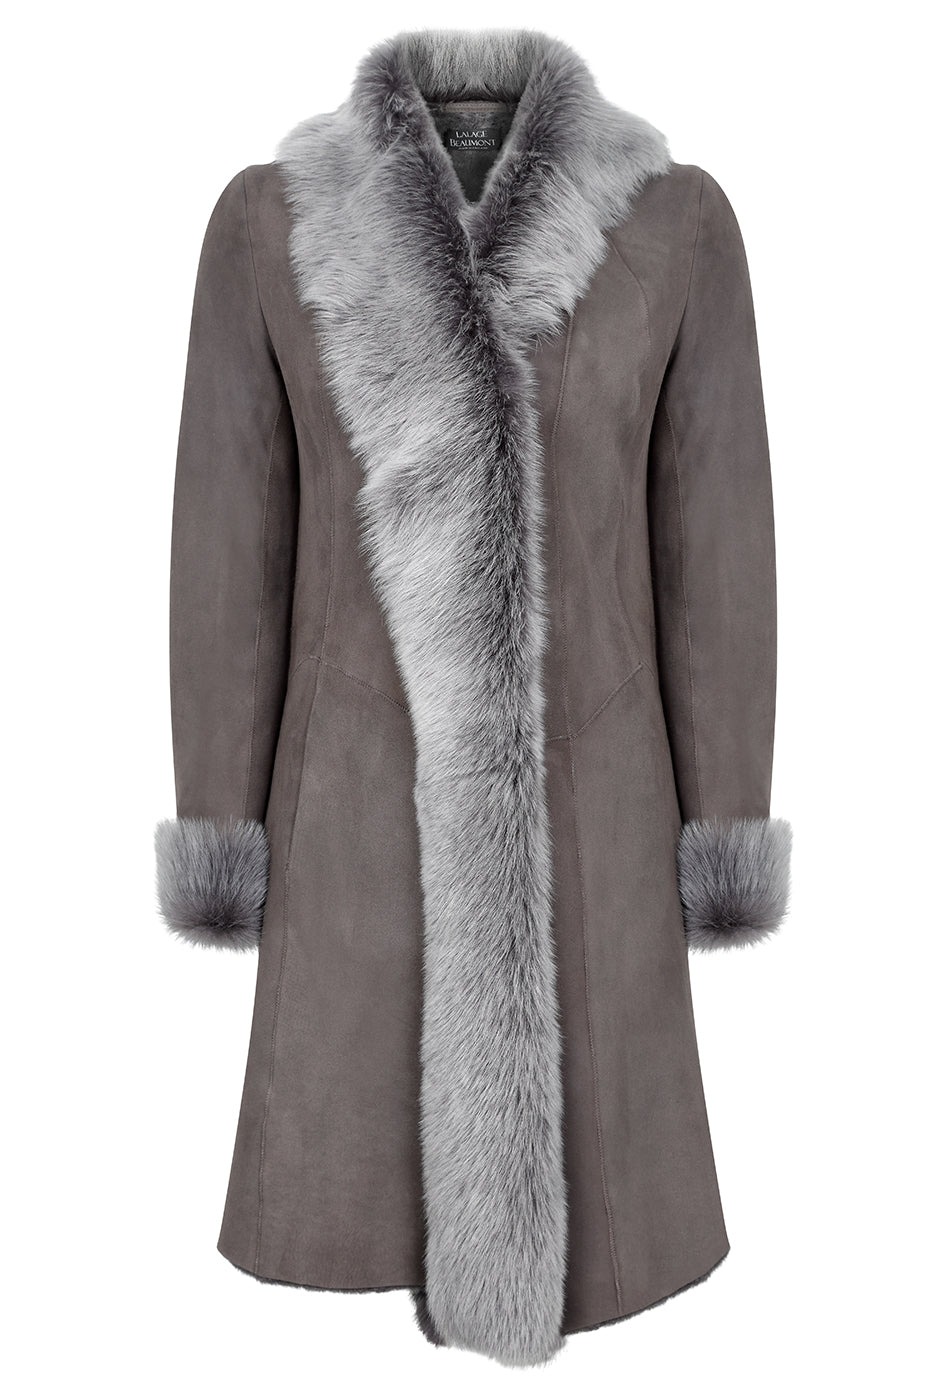 Designer sheepskin coat for women